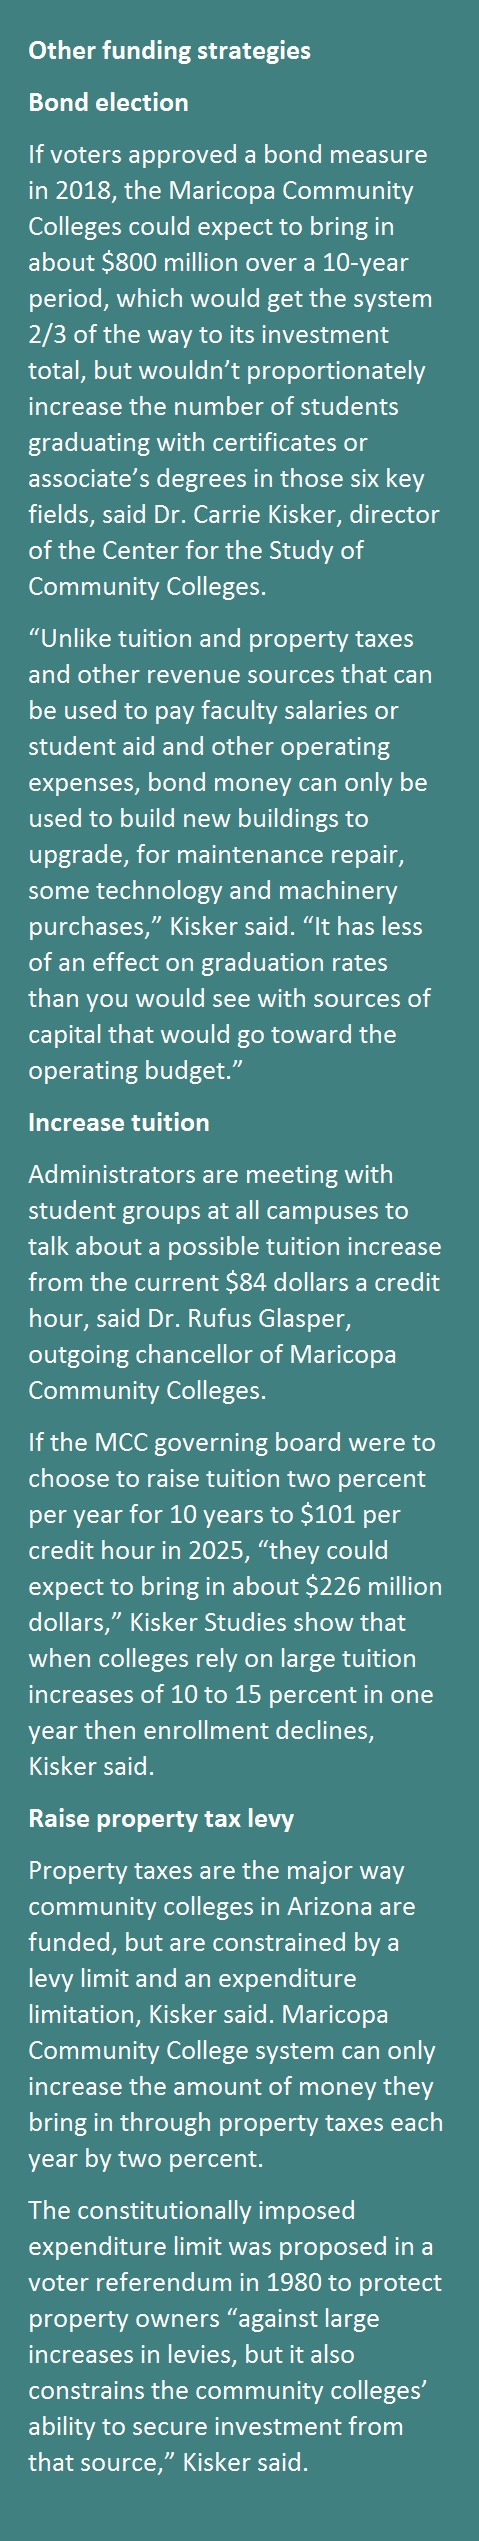 How will AZ community colleges meet 2025 workforce demand? (+ Infographic) OtherFundingStrategiesSidebar-BKG